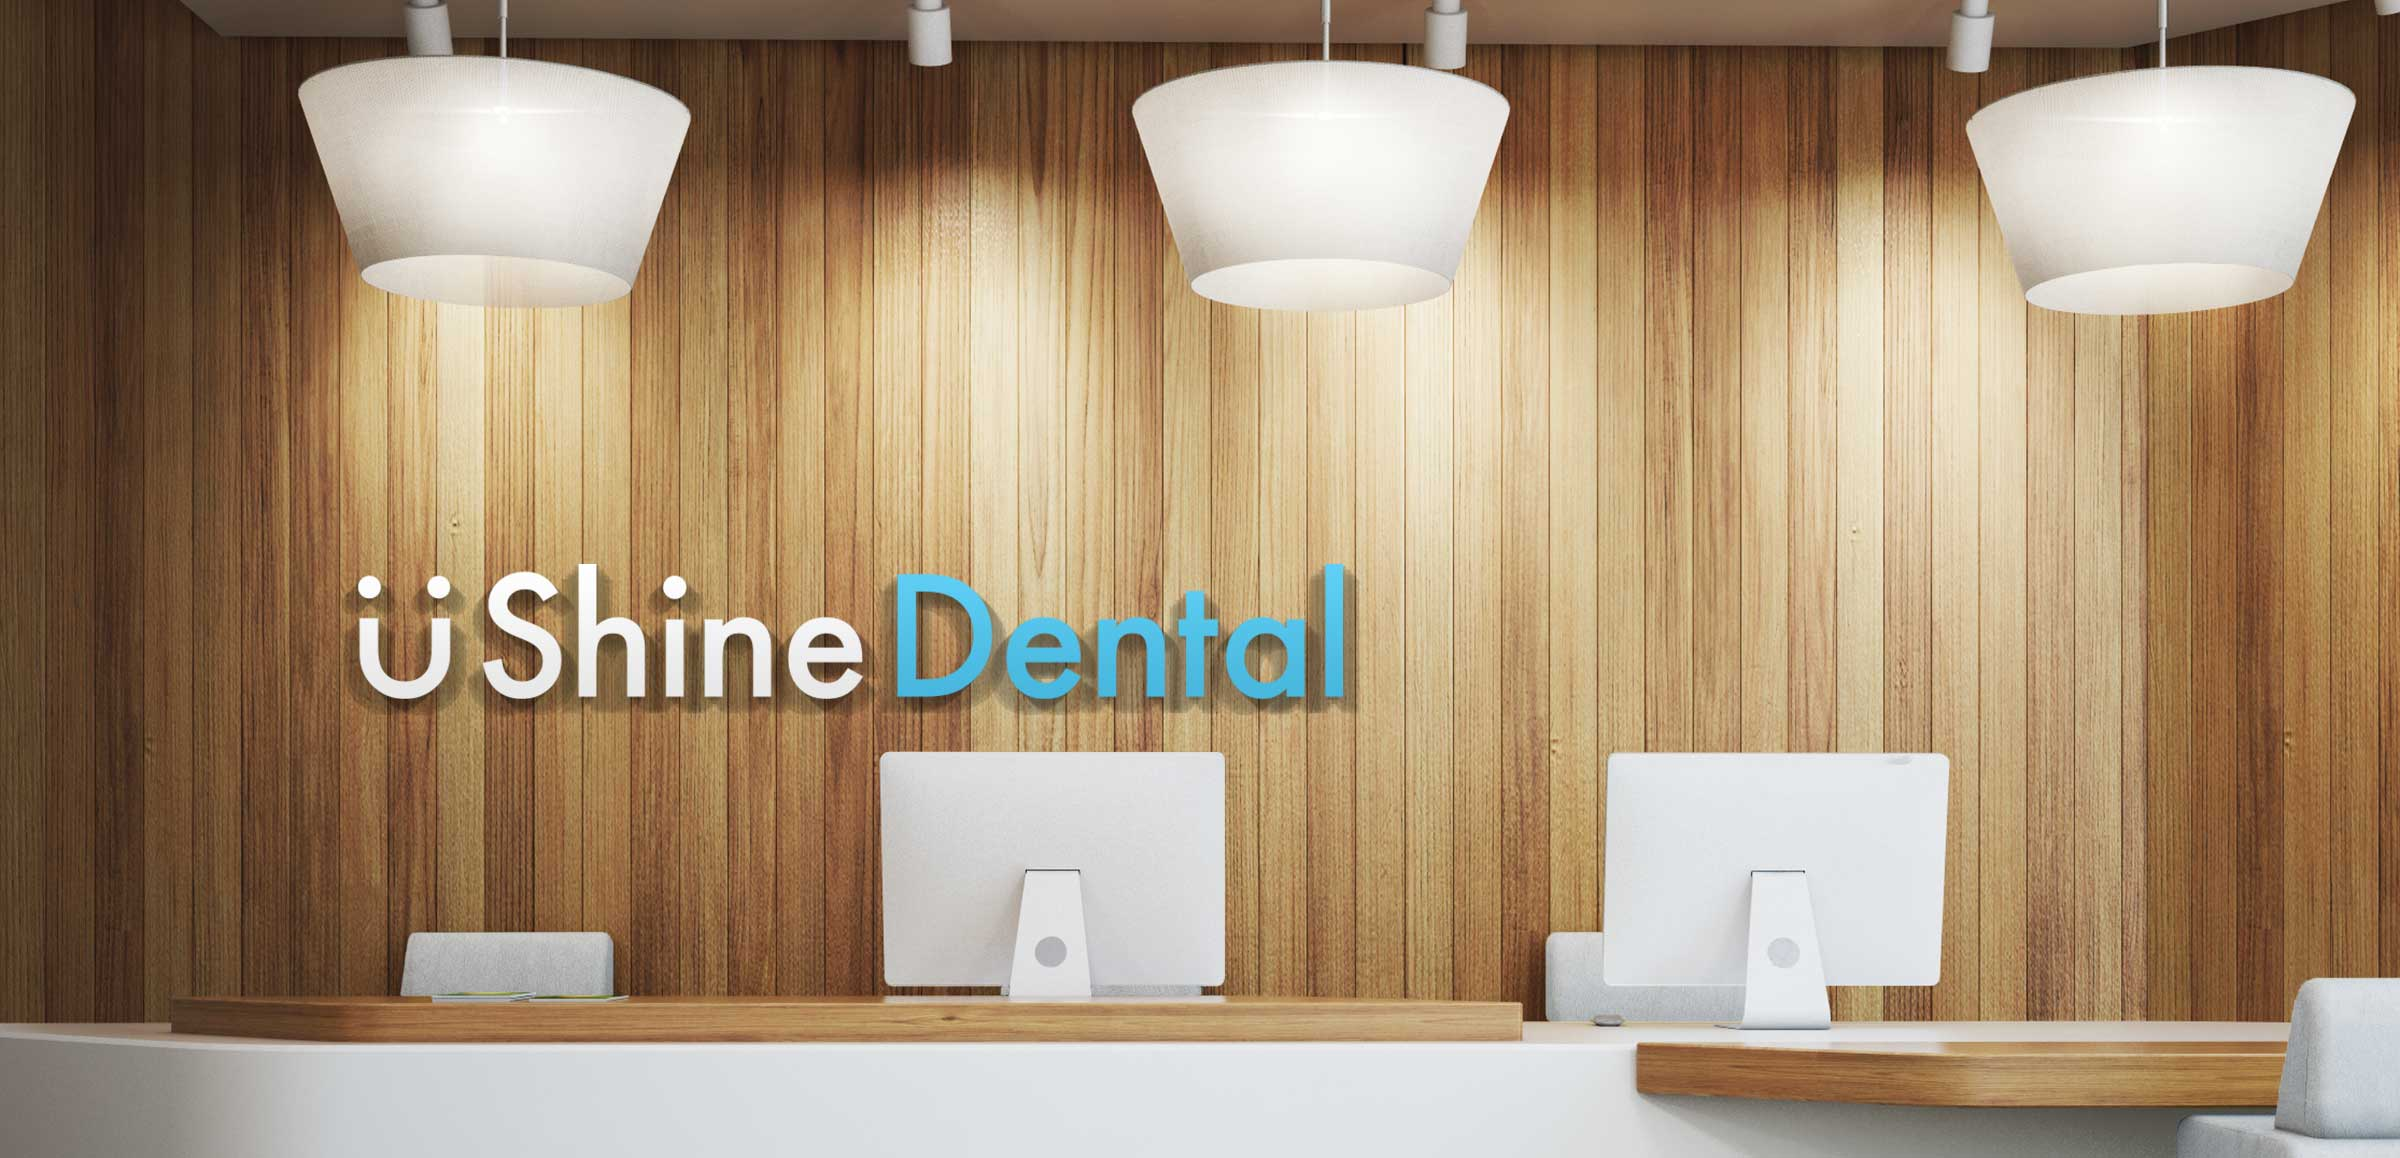 U-Shine-Dental-signage